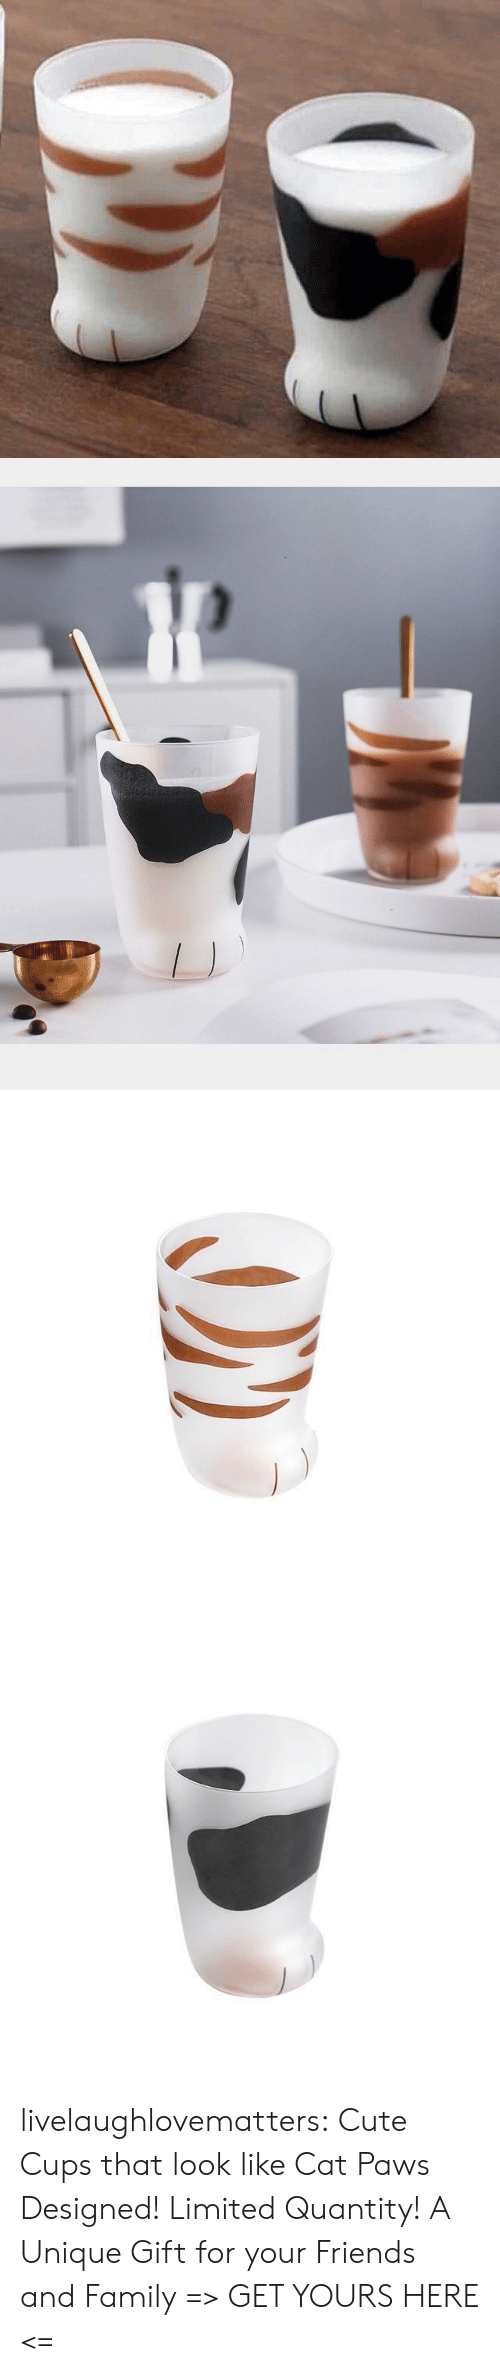 Cats, Cute, and Family: livelaughlovematters:  Cute Cups that look like Cat Paws Designed! Limited Quantity! A Unique Gift for your Friends and Family=> GET YOURS HERE <=